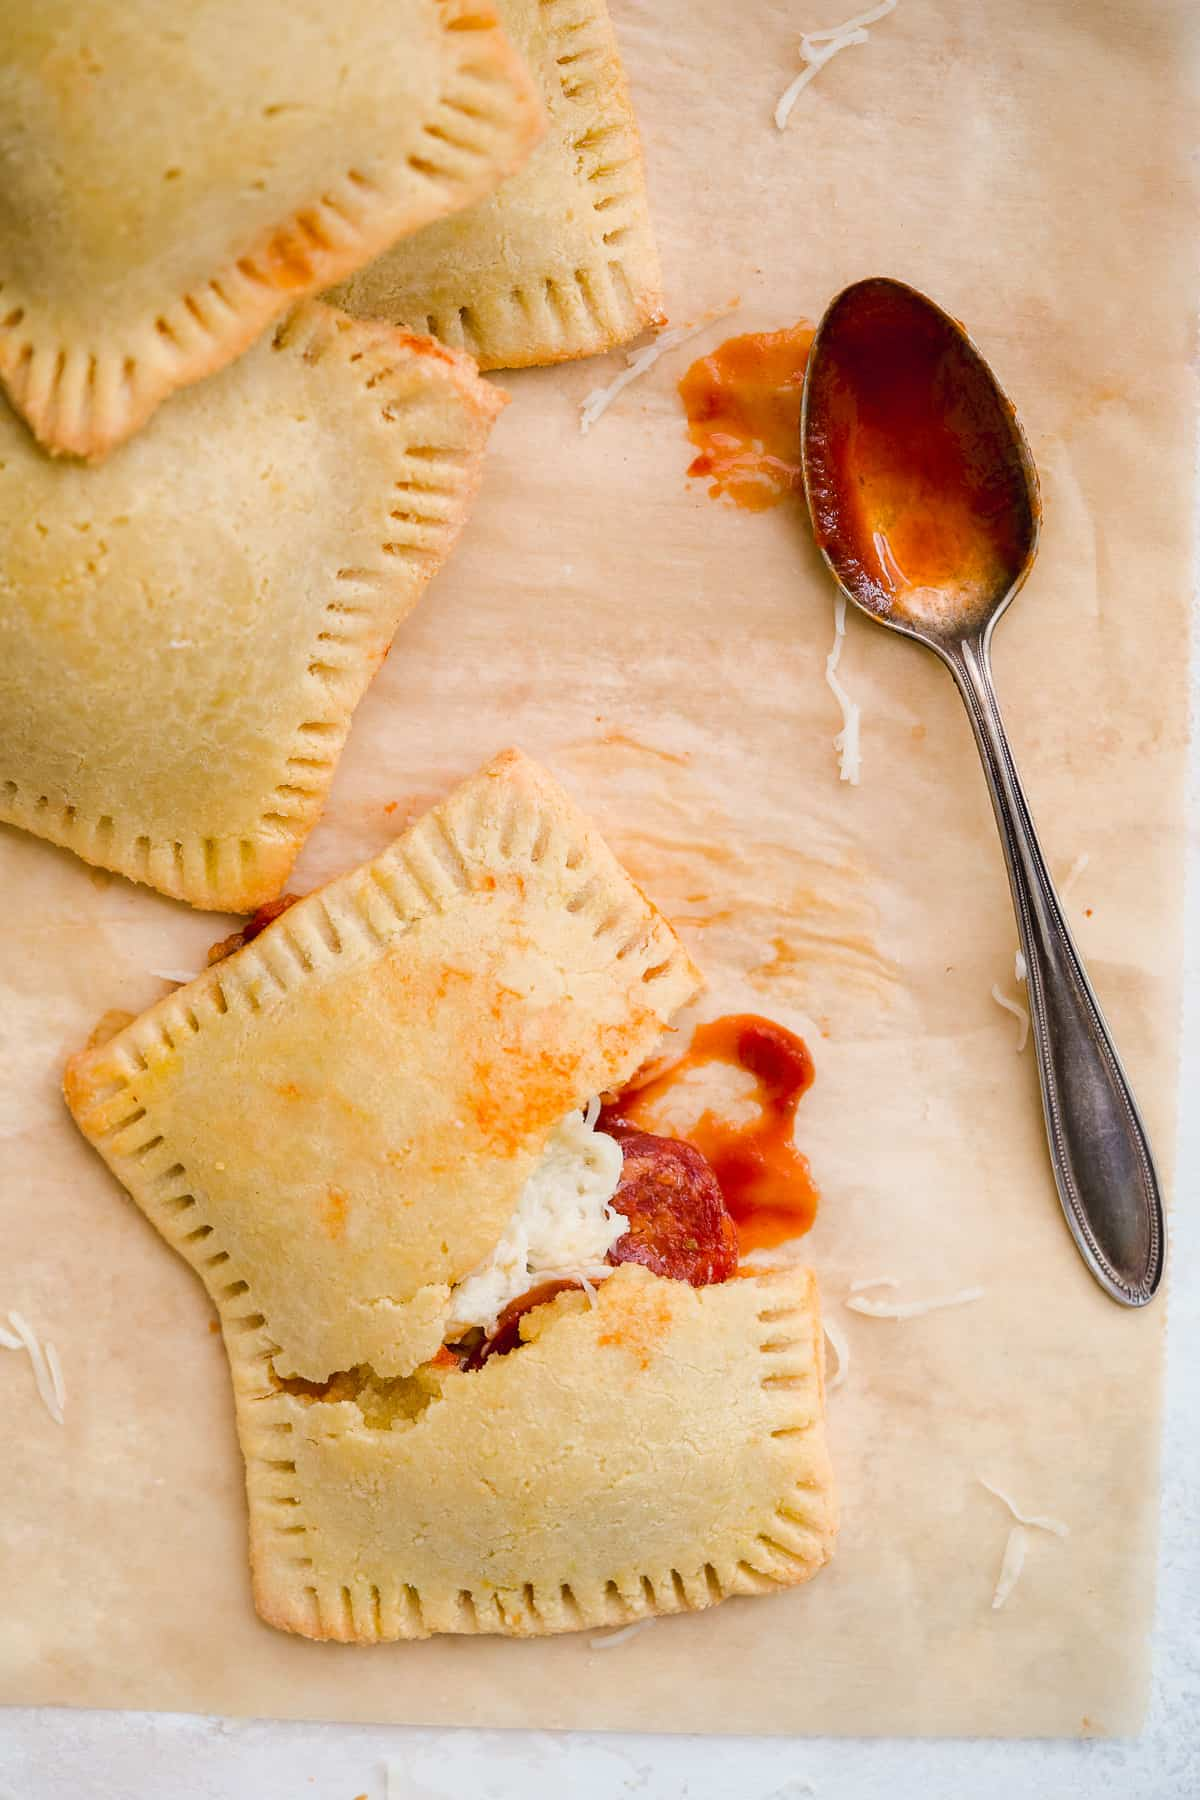 Parchment paper with several pizza hot pockets stacked. One hot pocket is broken in half to reveal yummy filling inside. Silver spoon dipped in marinara is resting nearby. Shredded parmesan cheese is sprinkled around.